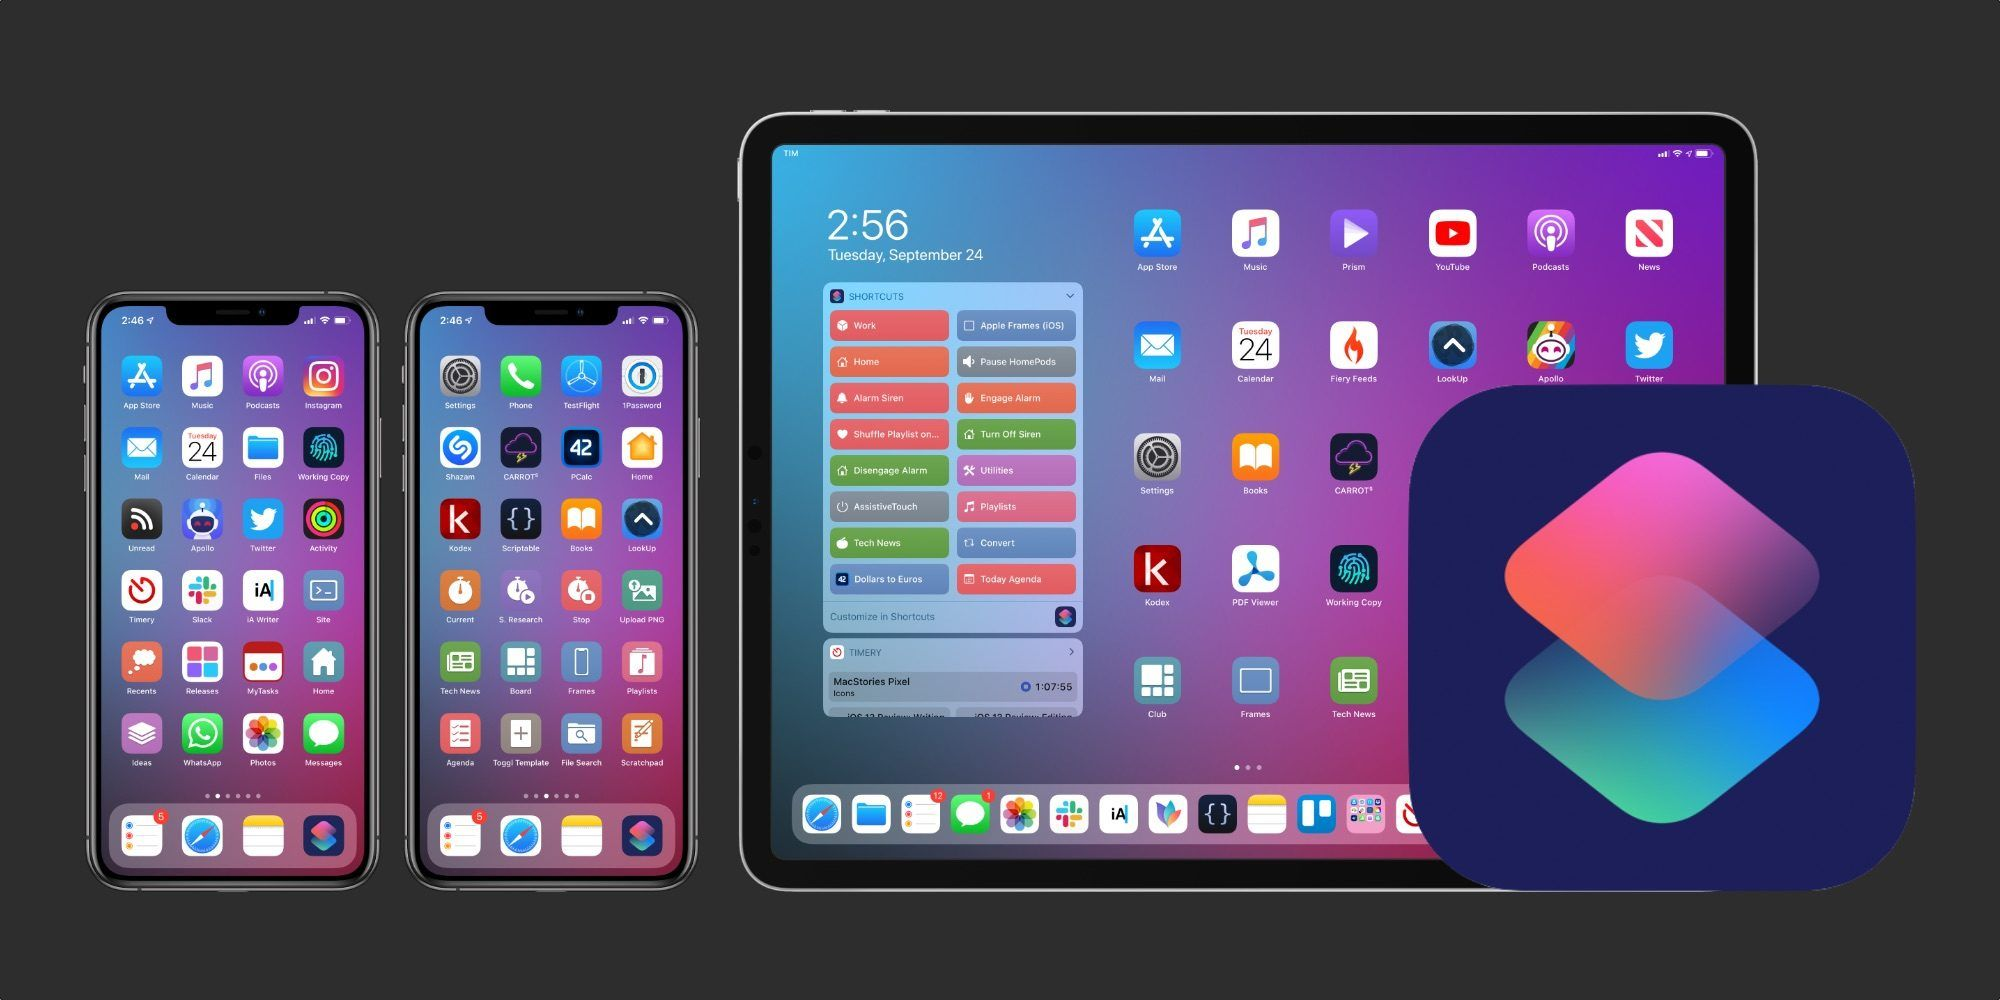 Apple's Shortcuts app is now builtin on iPhones and iPads